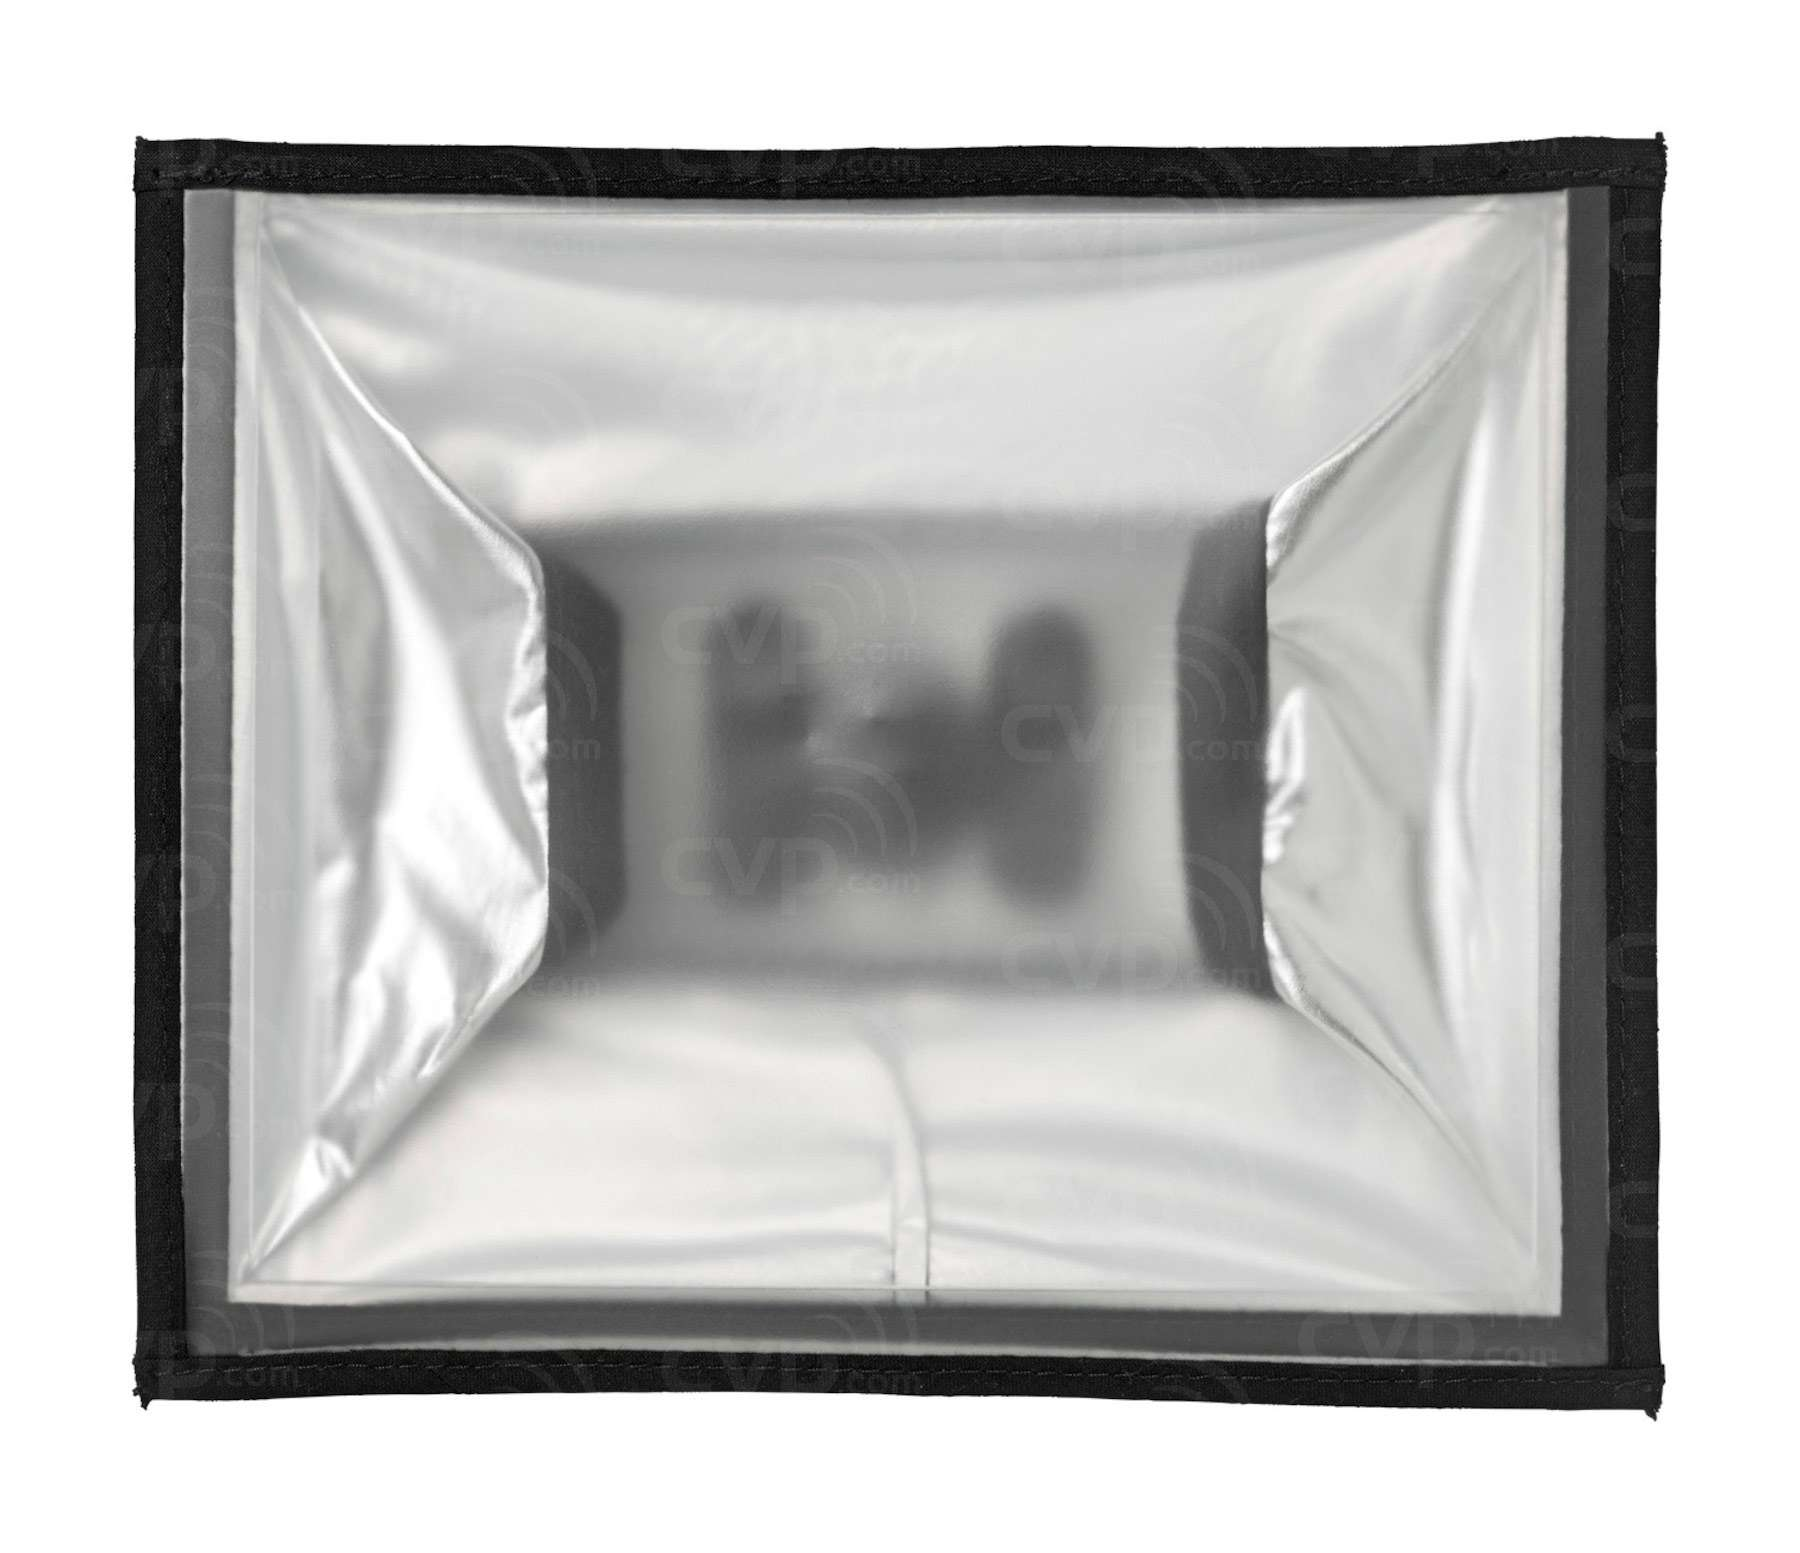 Manfrotto (MLSBOXL) Softbox for Lykos LED Lights